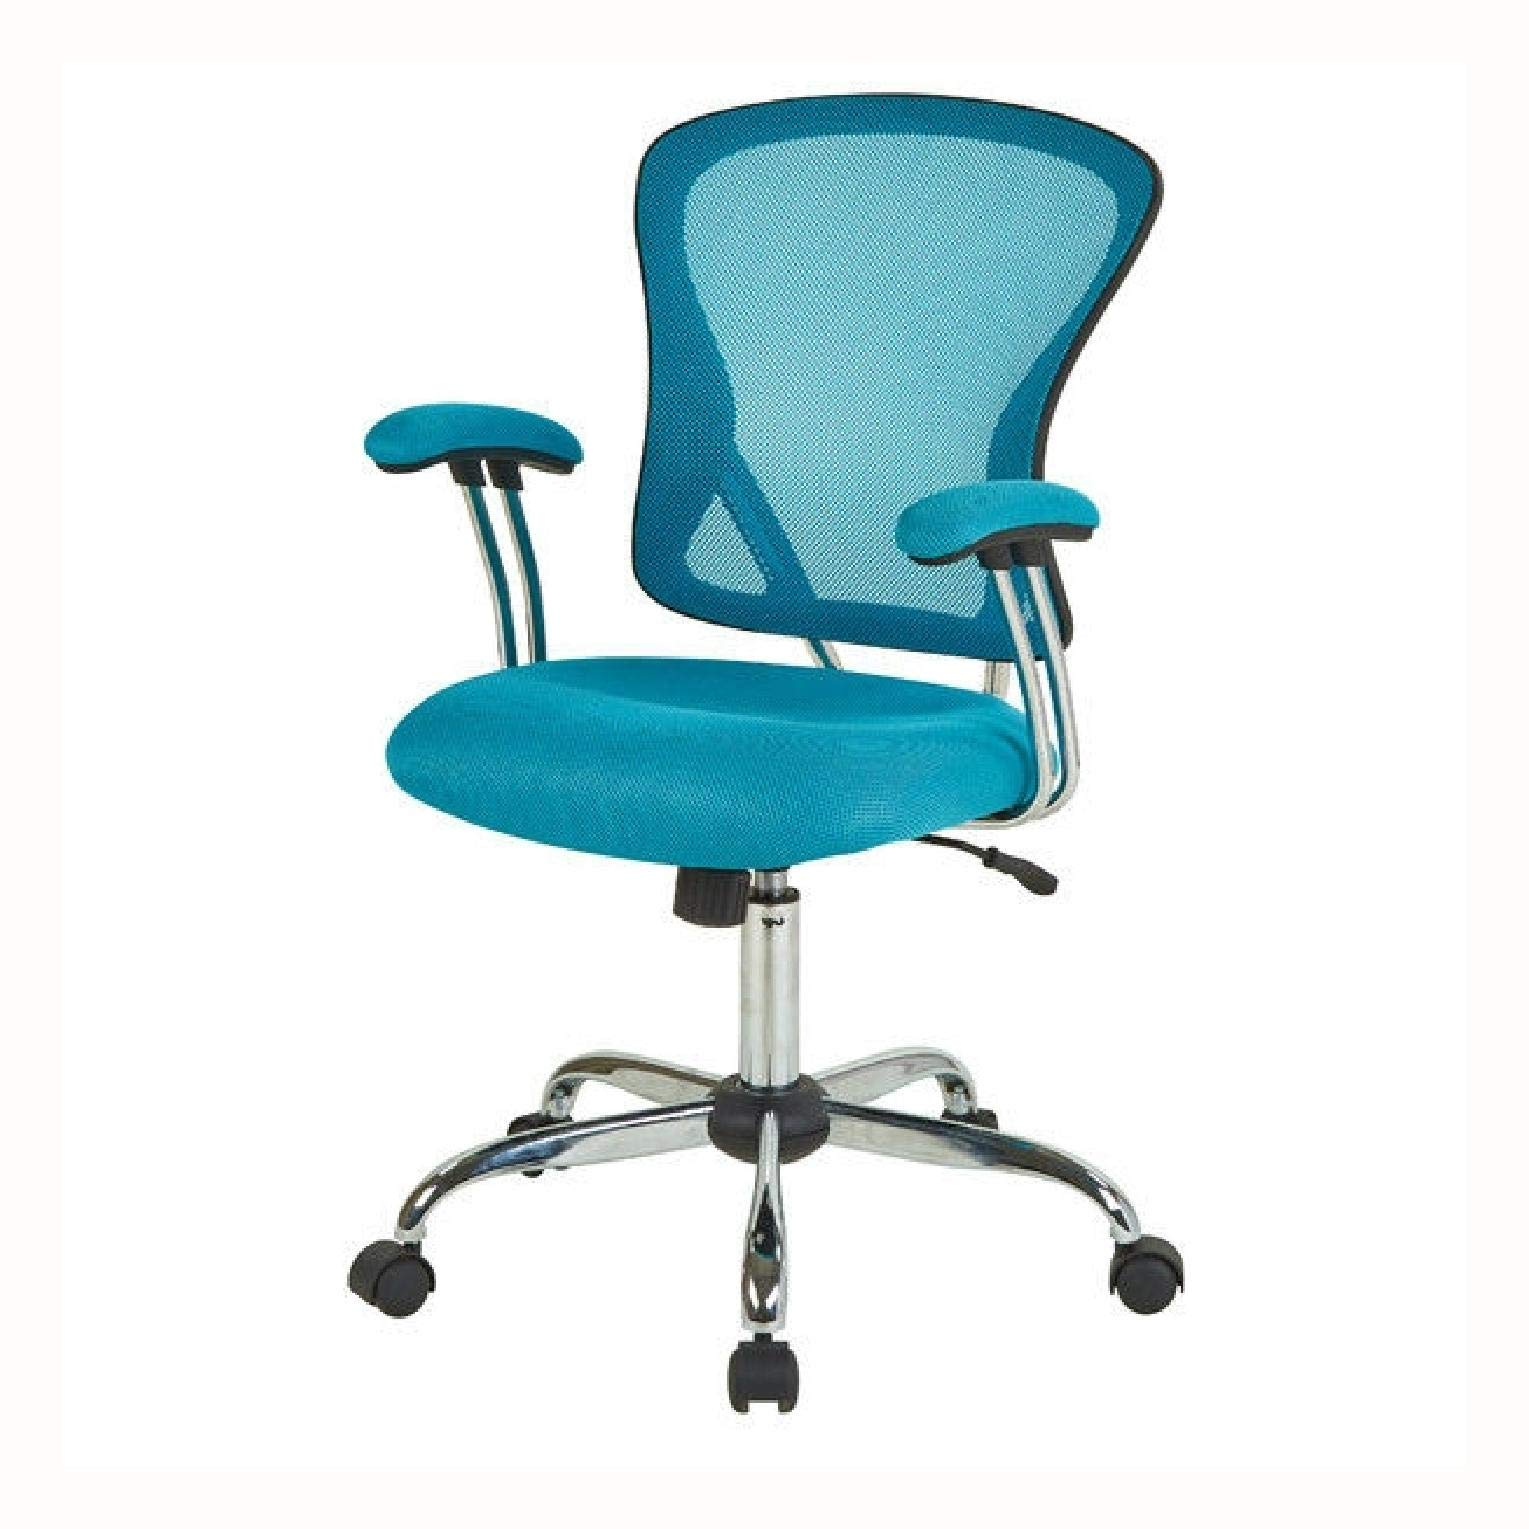 Office Chairs, Blue High Back Mesh Office Chair with Padded Armrest by HEATAPPLY